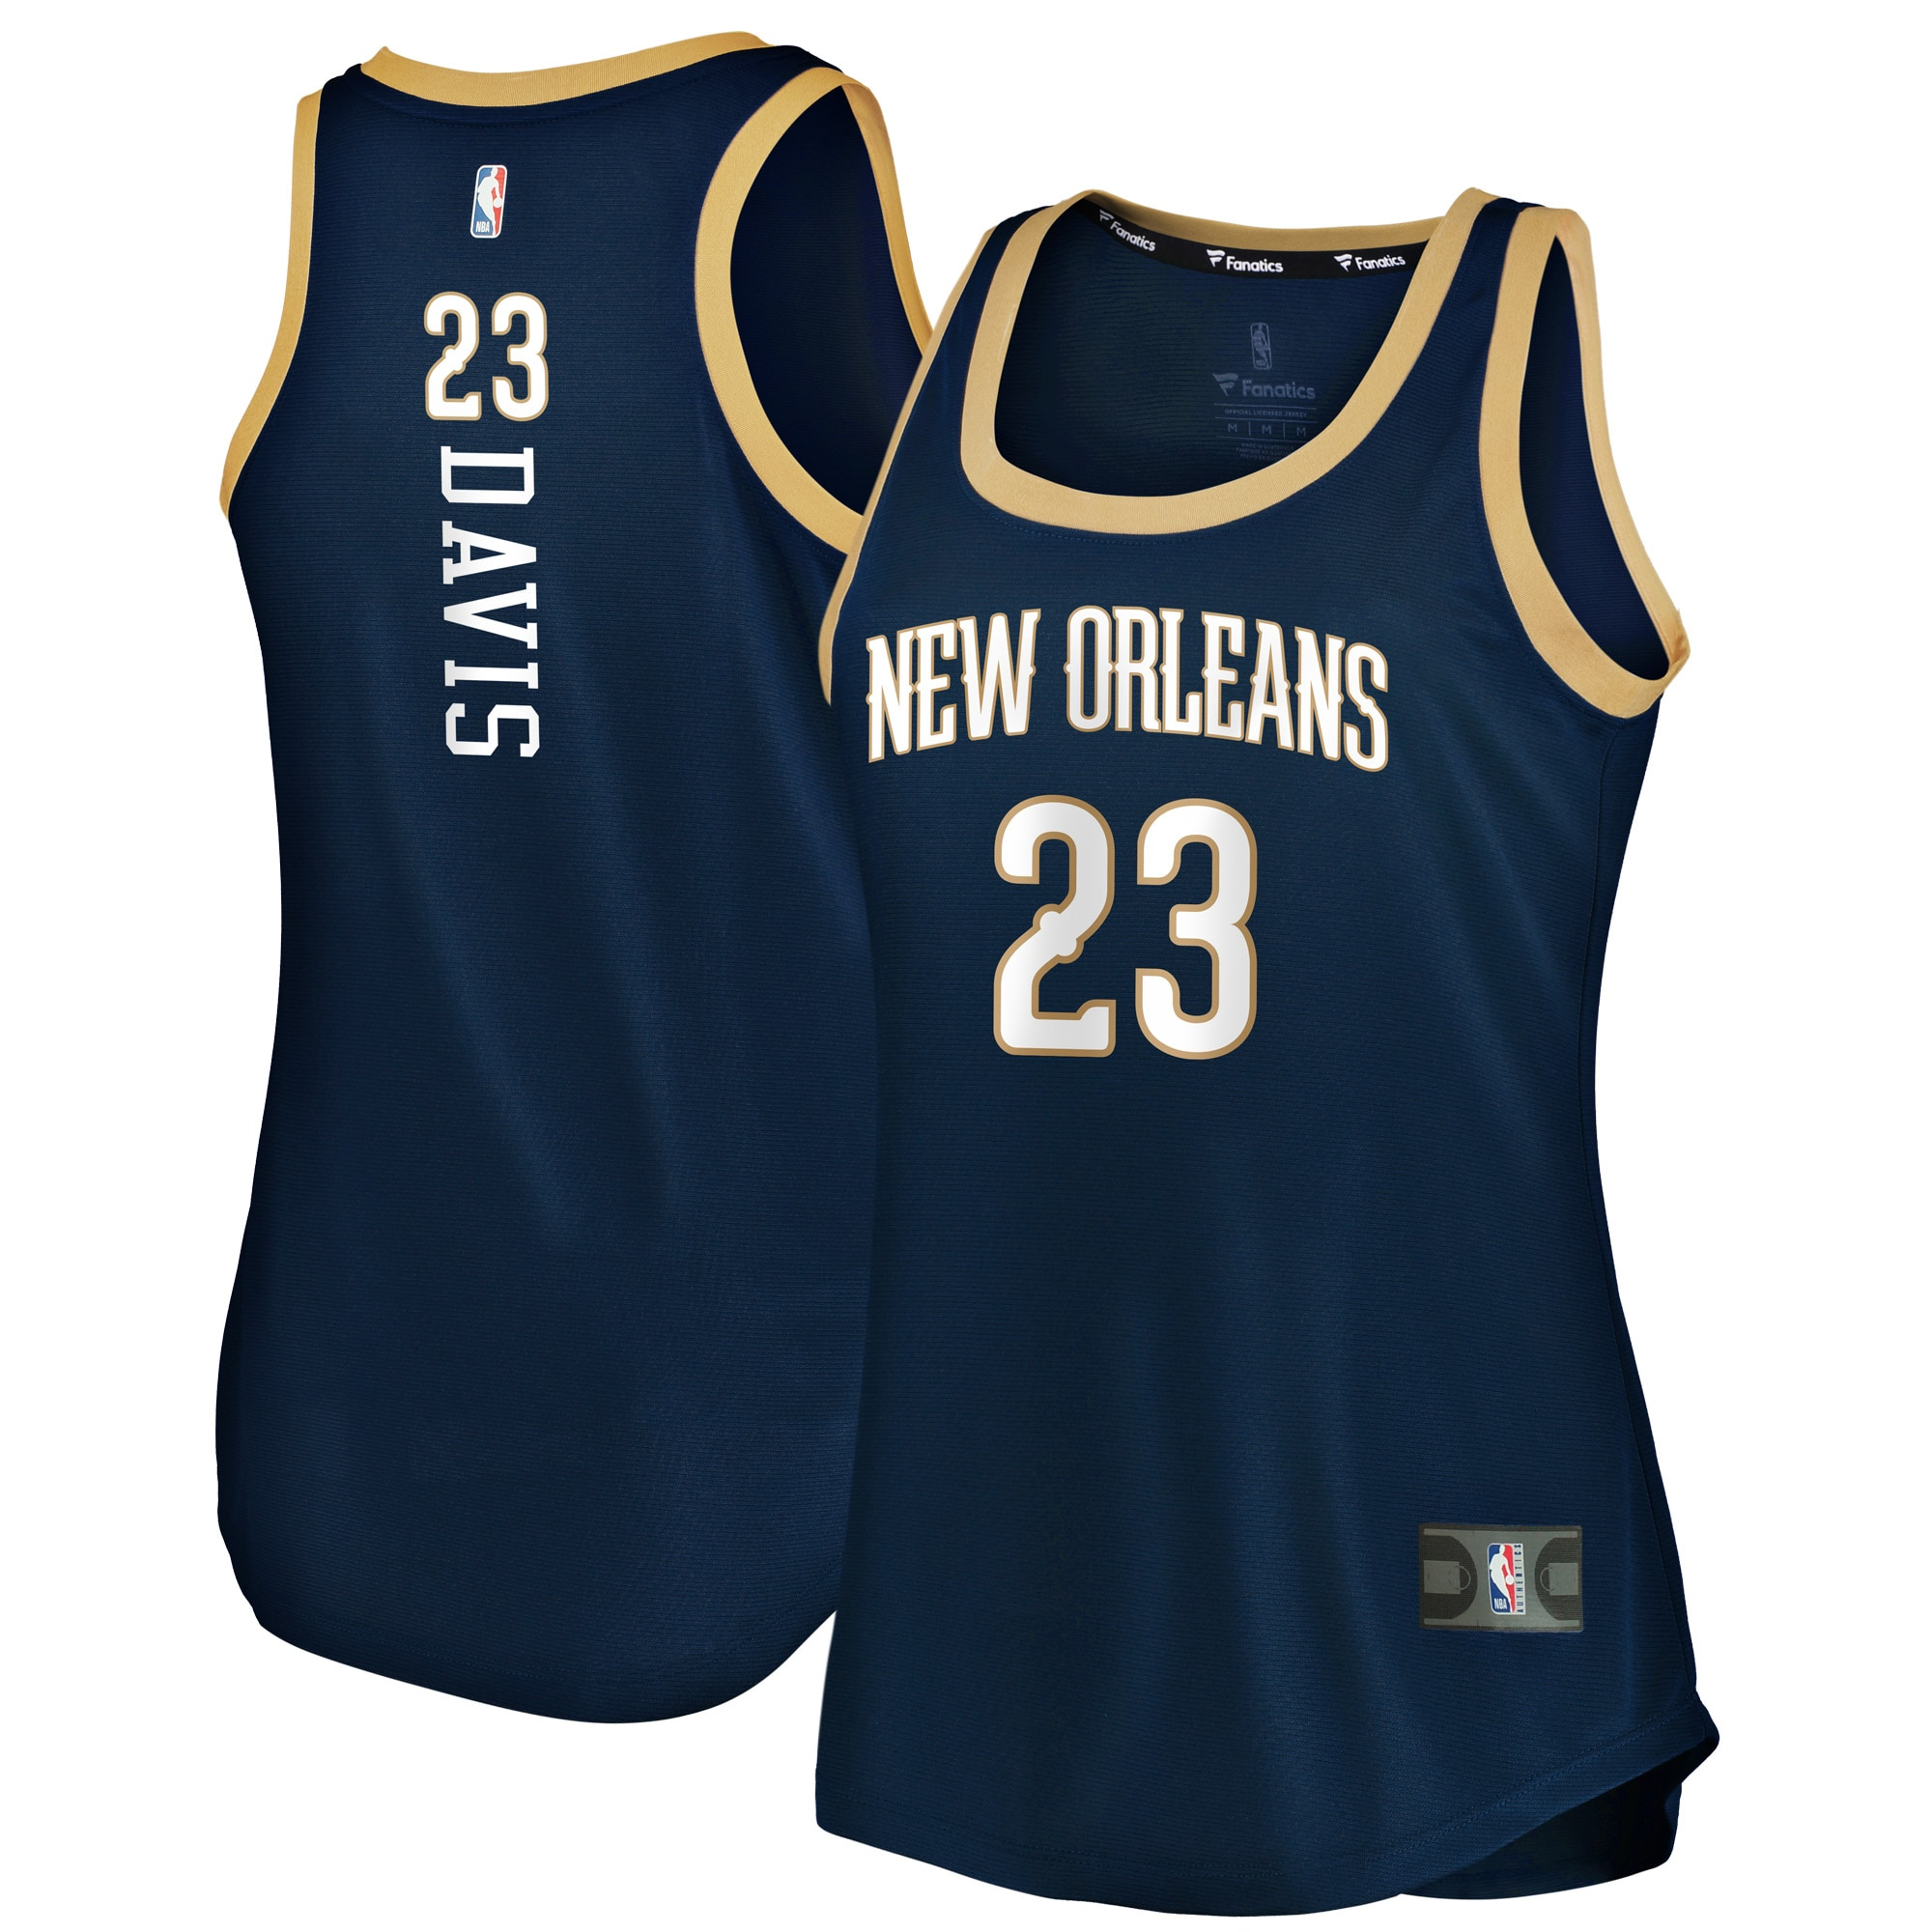 Anthony Davis New Orleans Pelicans Fanatics Branded Women's Fast Break Tank Jersey - Icon Edition - Navy